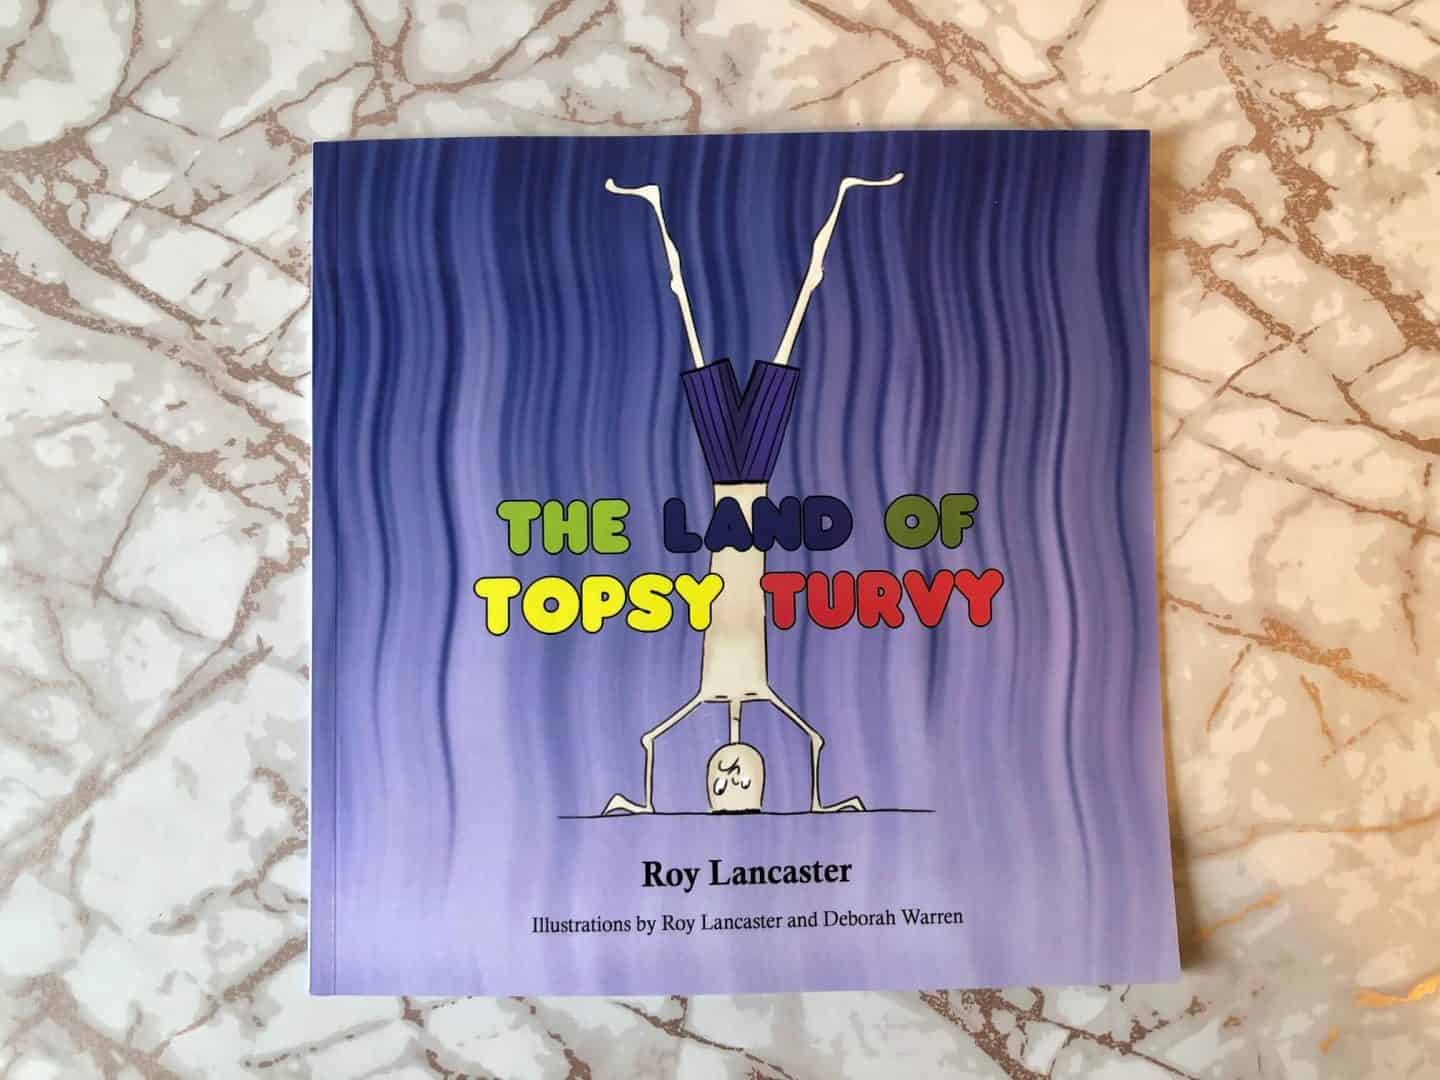 Book Cover - The Land of Topsy Turvy